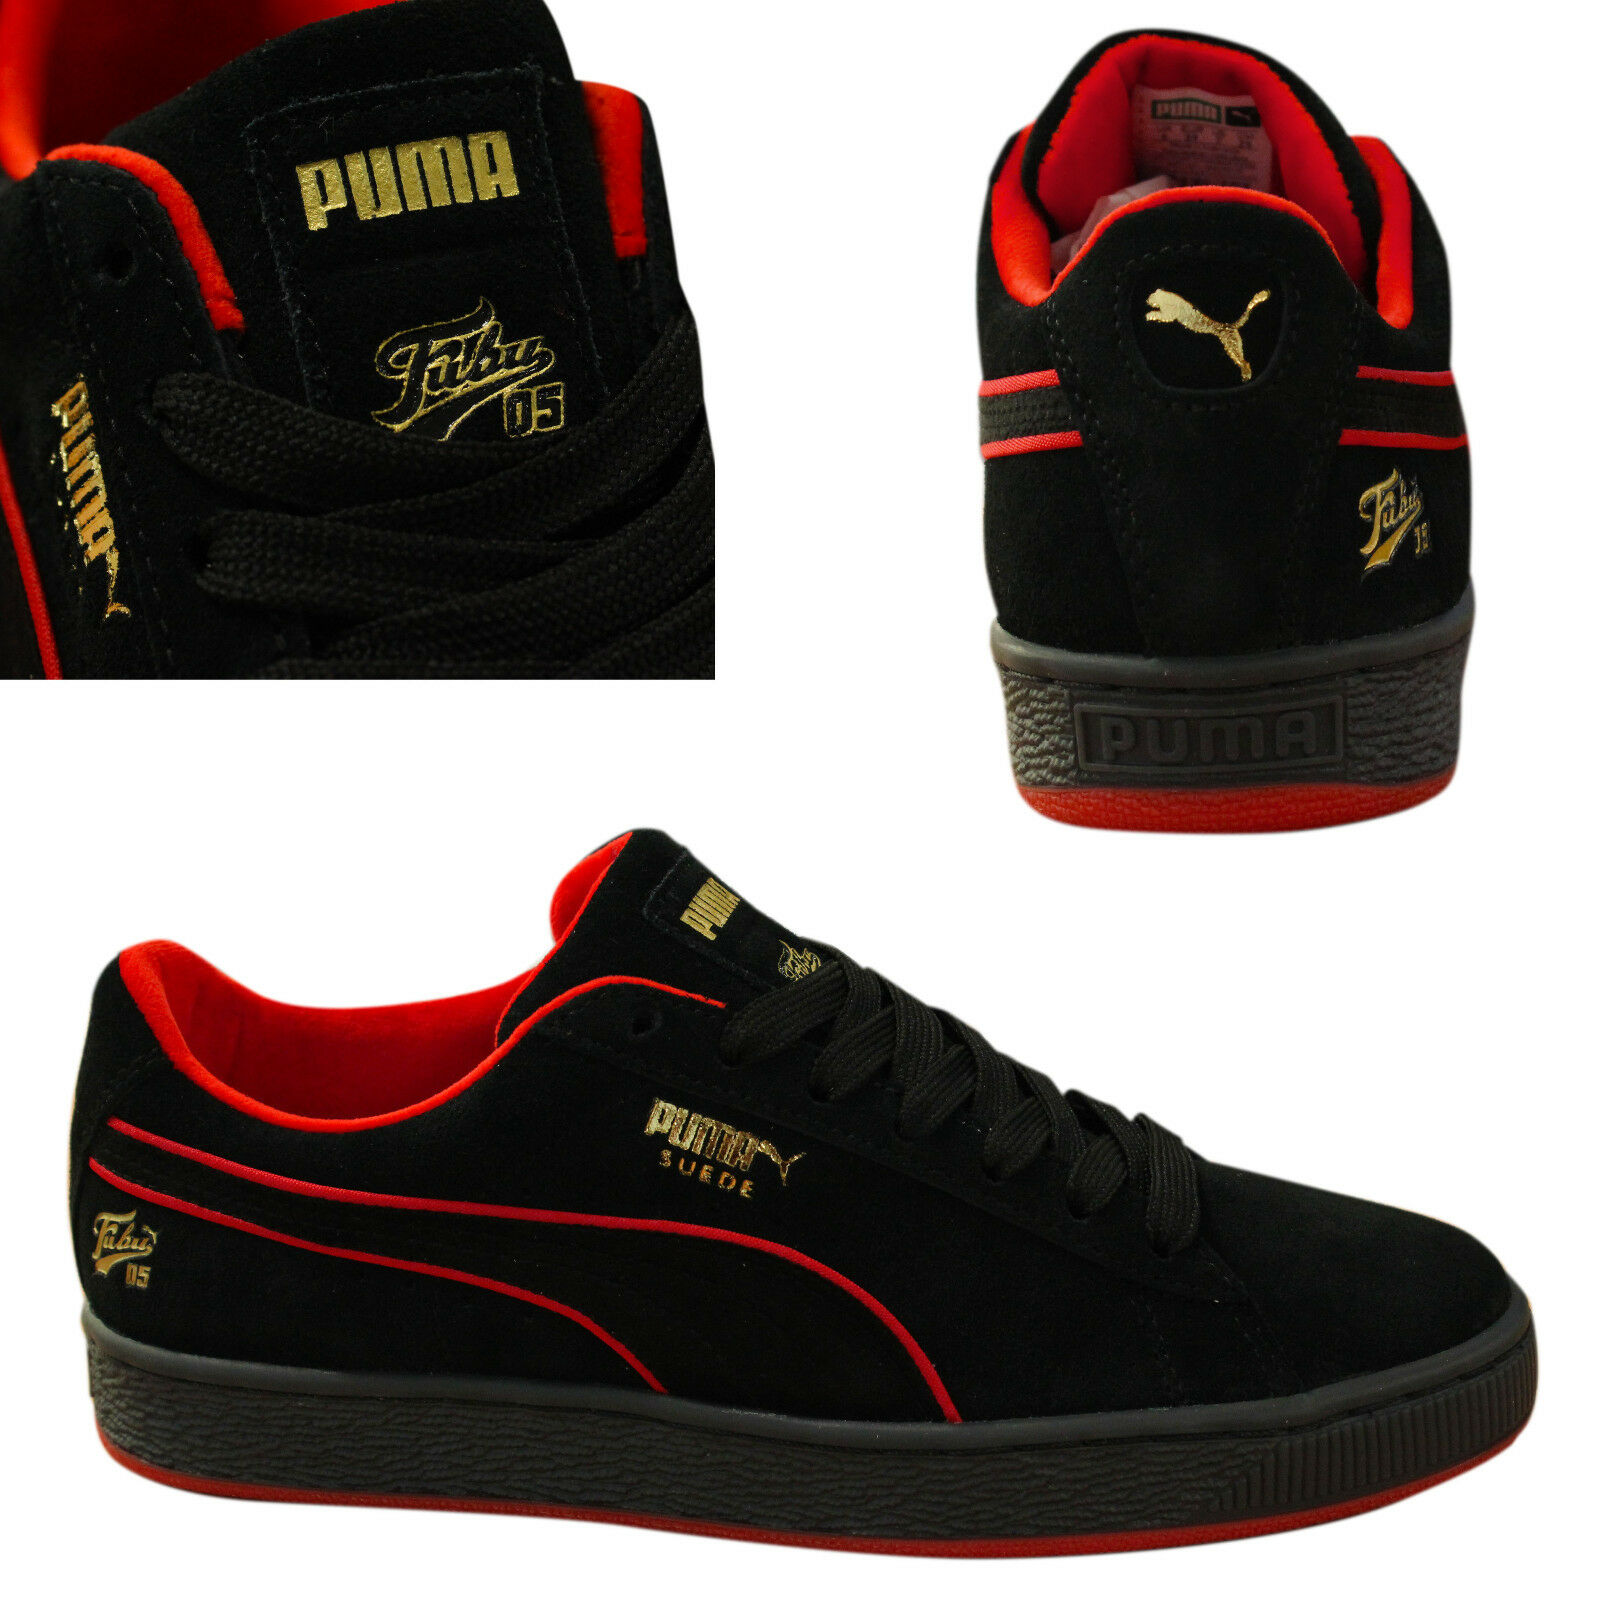 1e58dd625a0 Details about Puma Suede Classic x Fubu Lace Up Mens Trainers Leather Black  366320 02 Q4B